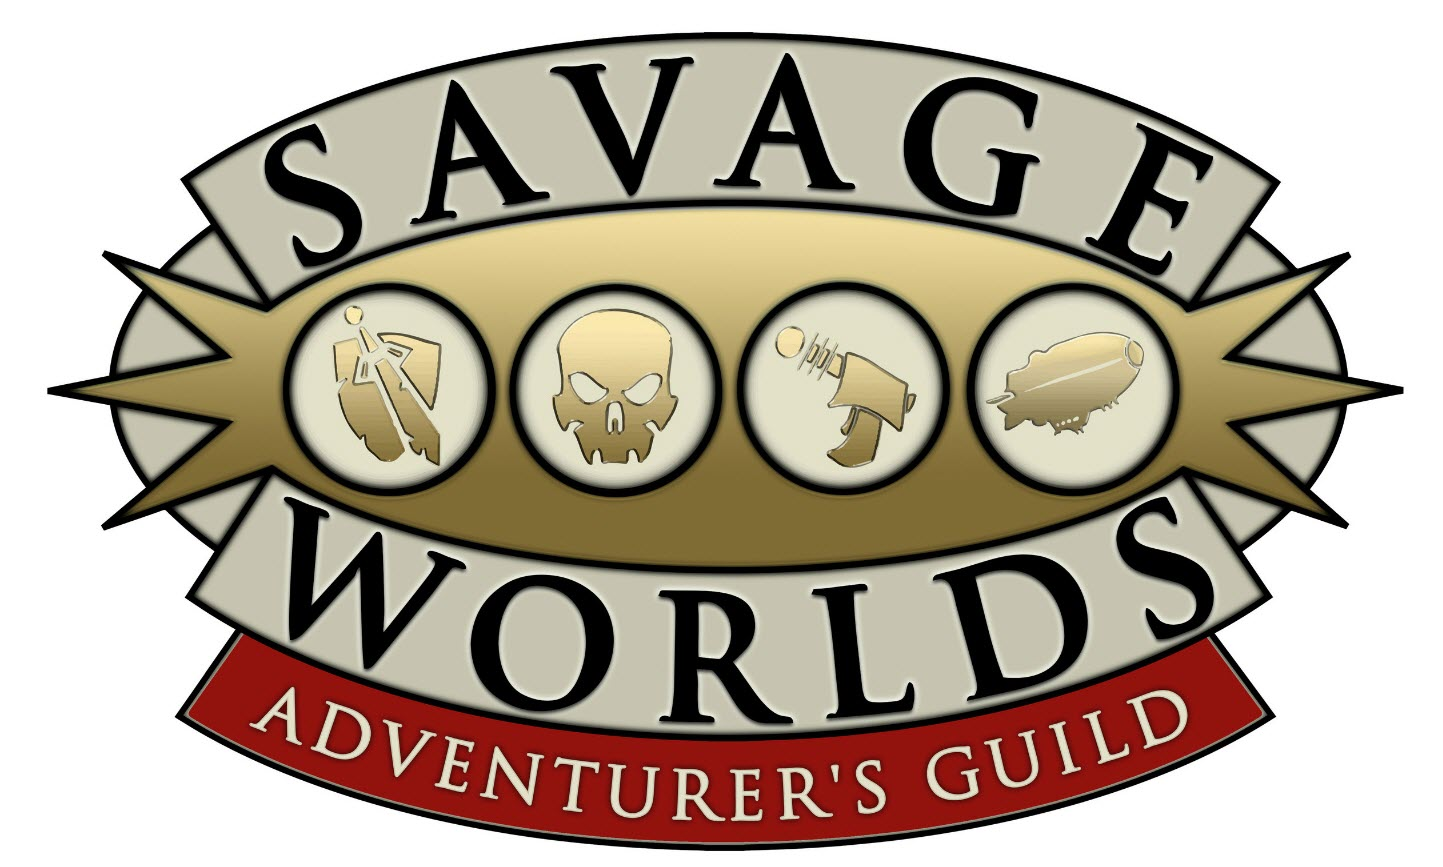 Savage Worlds Adventurer's Guild